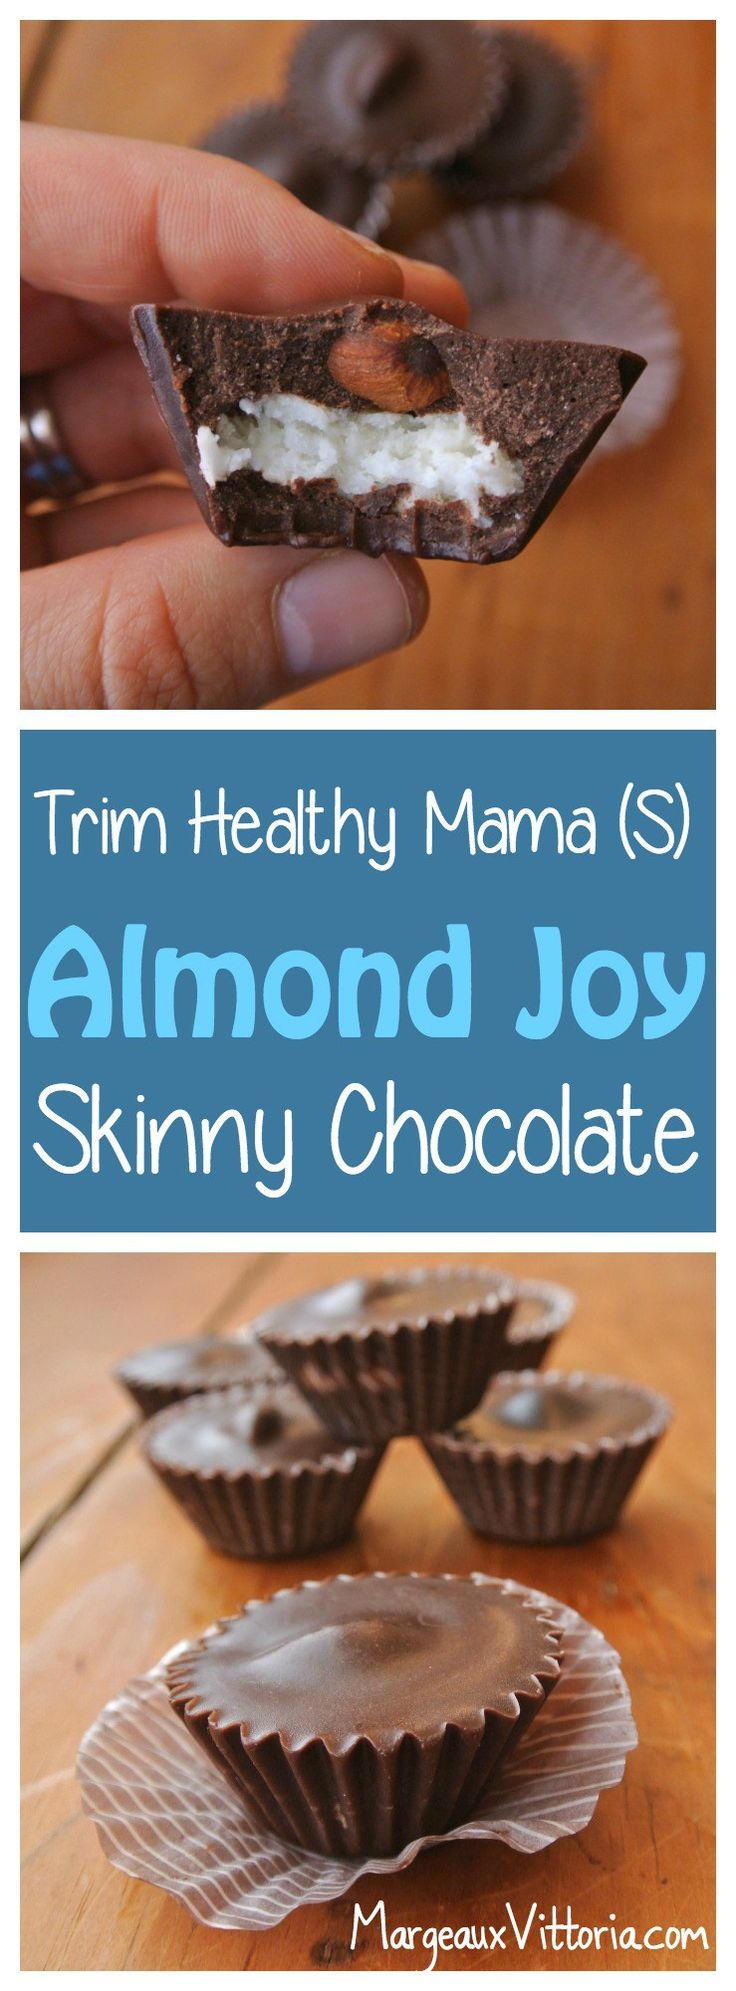 Trim Healthy Mama (S) Almond Joy Skinny Chocolate